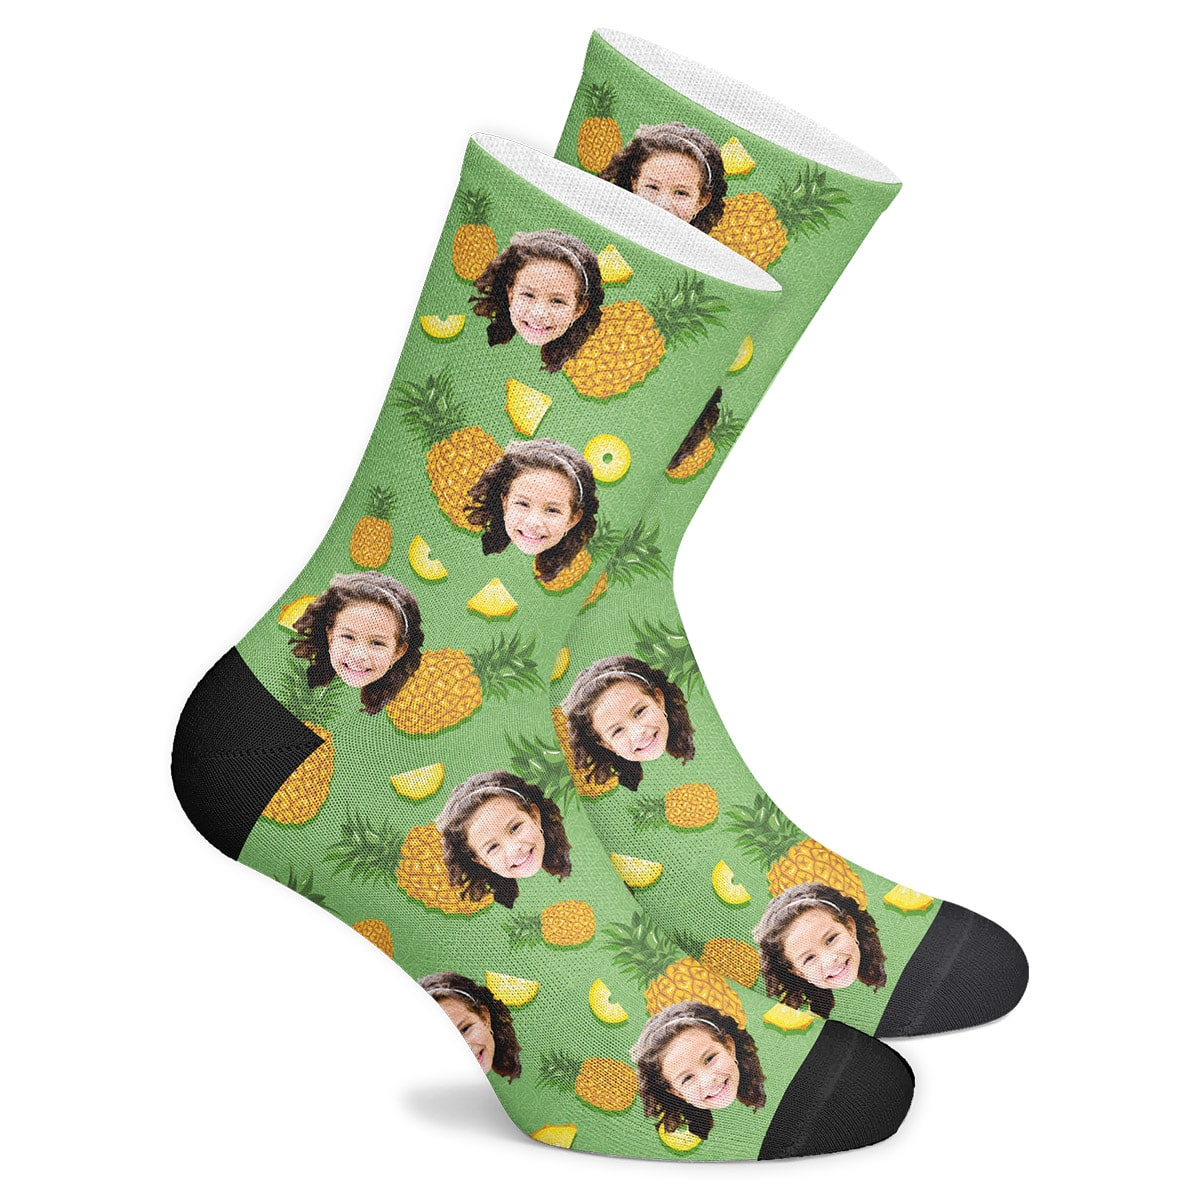 Custom Pineapple Socks - MyPhotoSocks